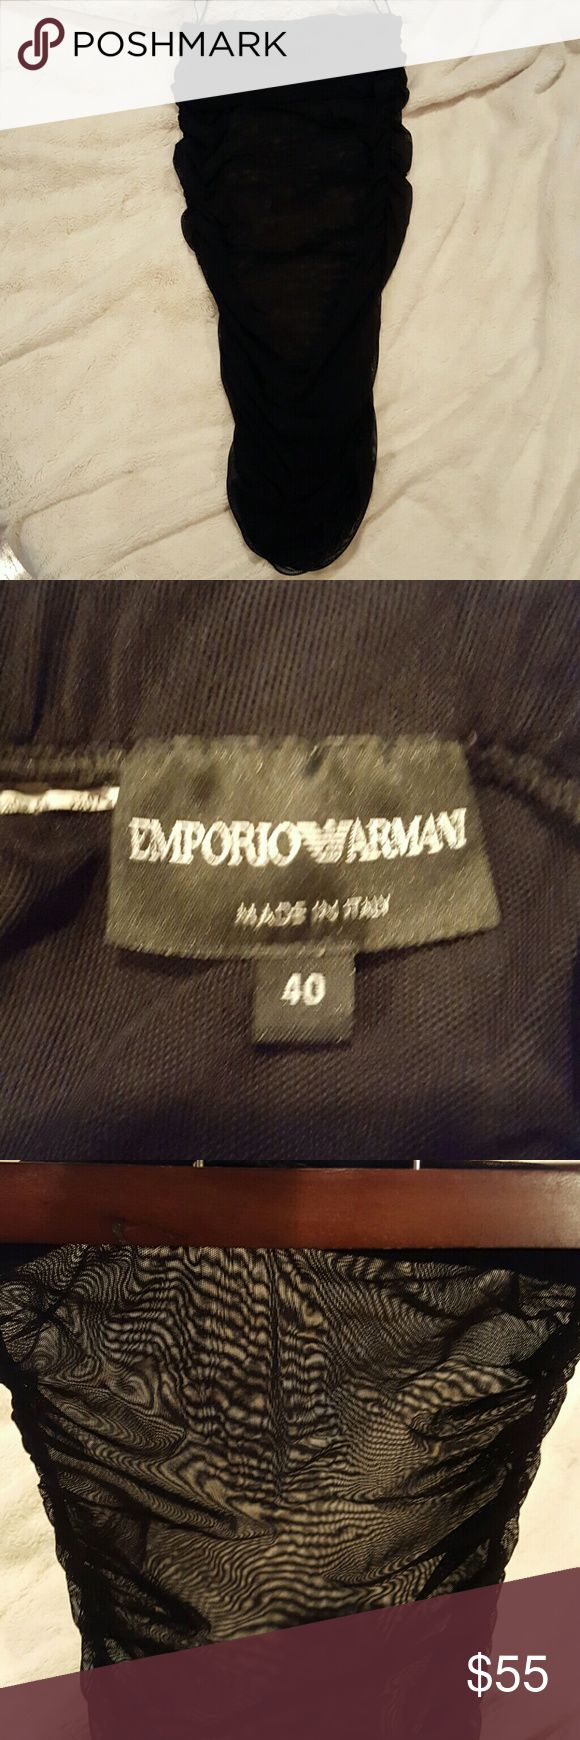 Sheer Armani Slip Sheer Emporio Armani slip. This can go under a skirt or tube dress. Emporio Armani Other